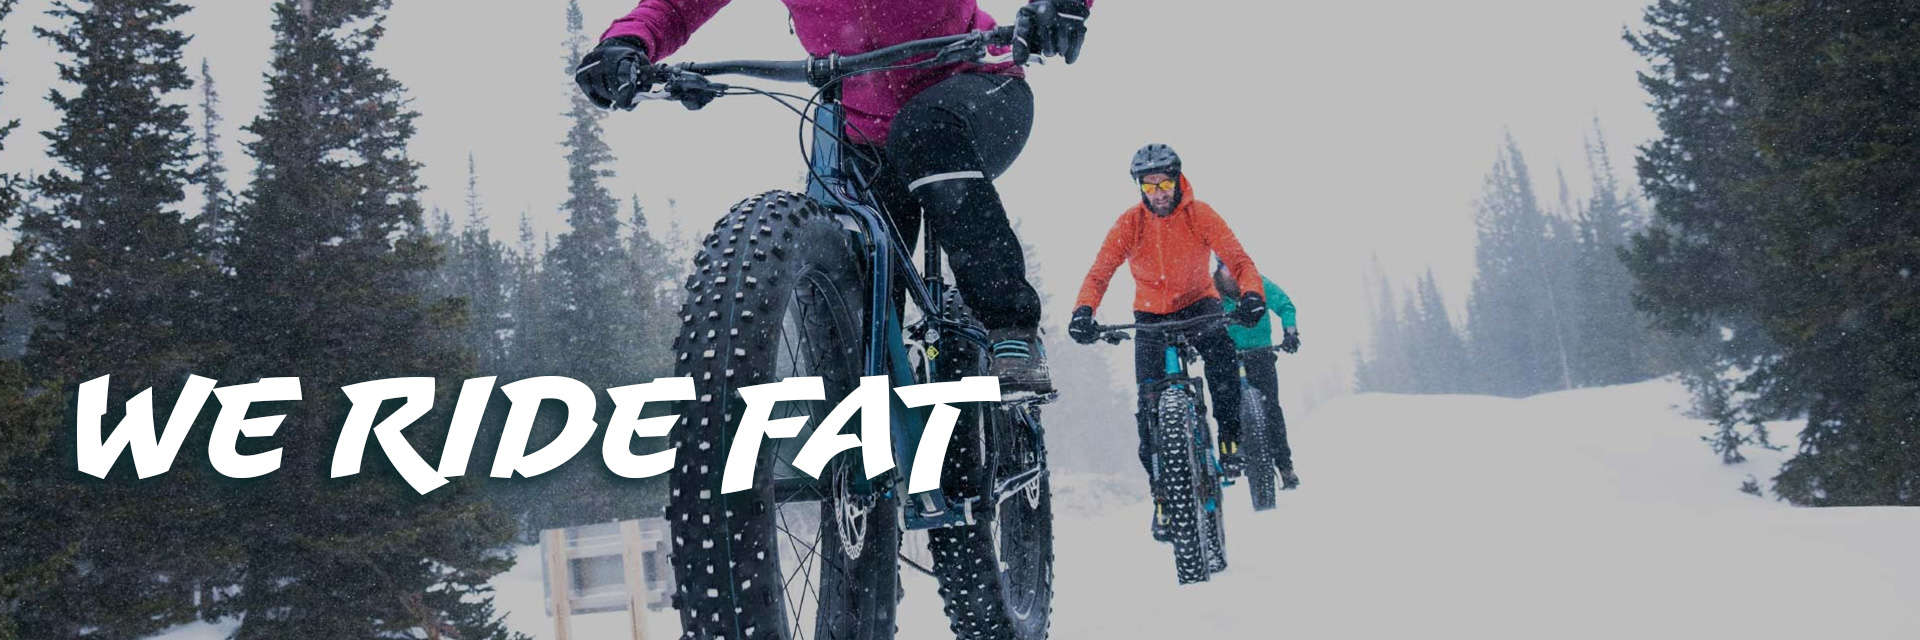 We Ride Fat